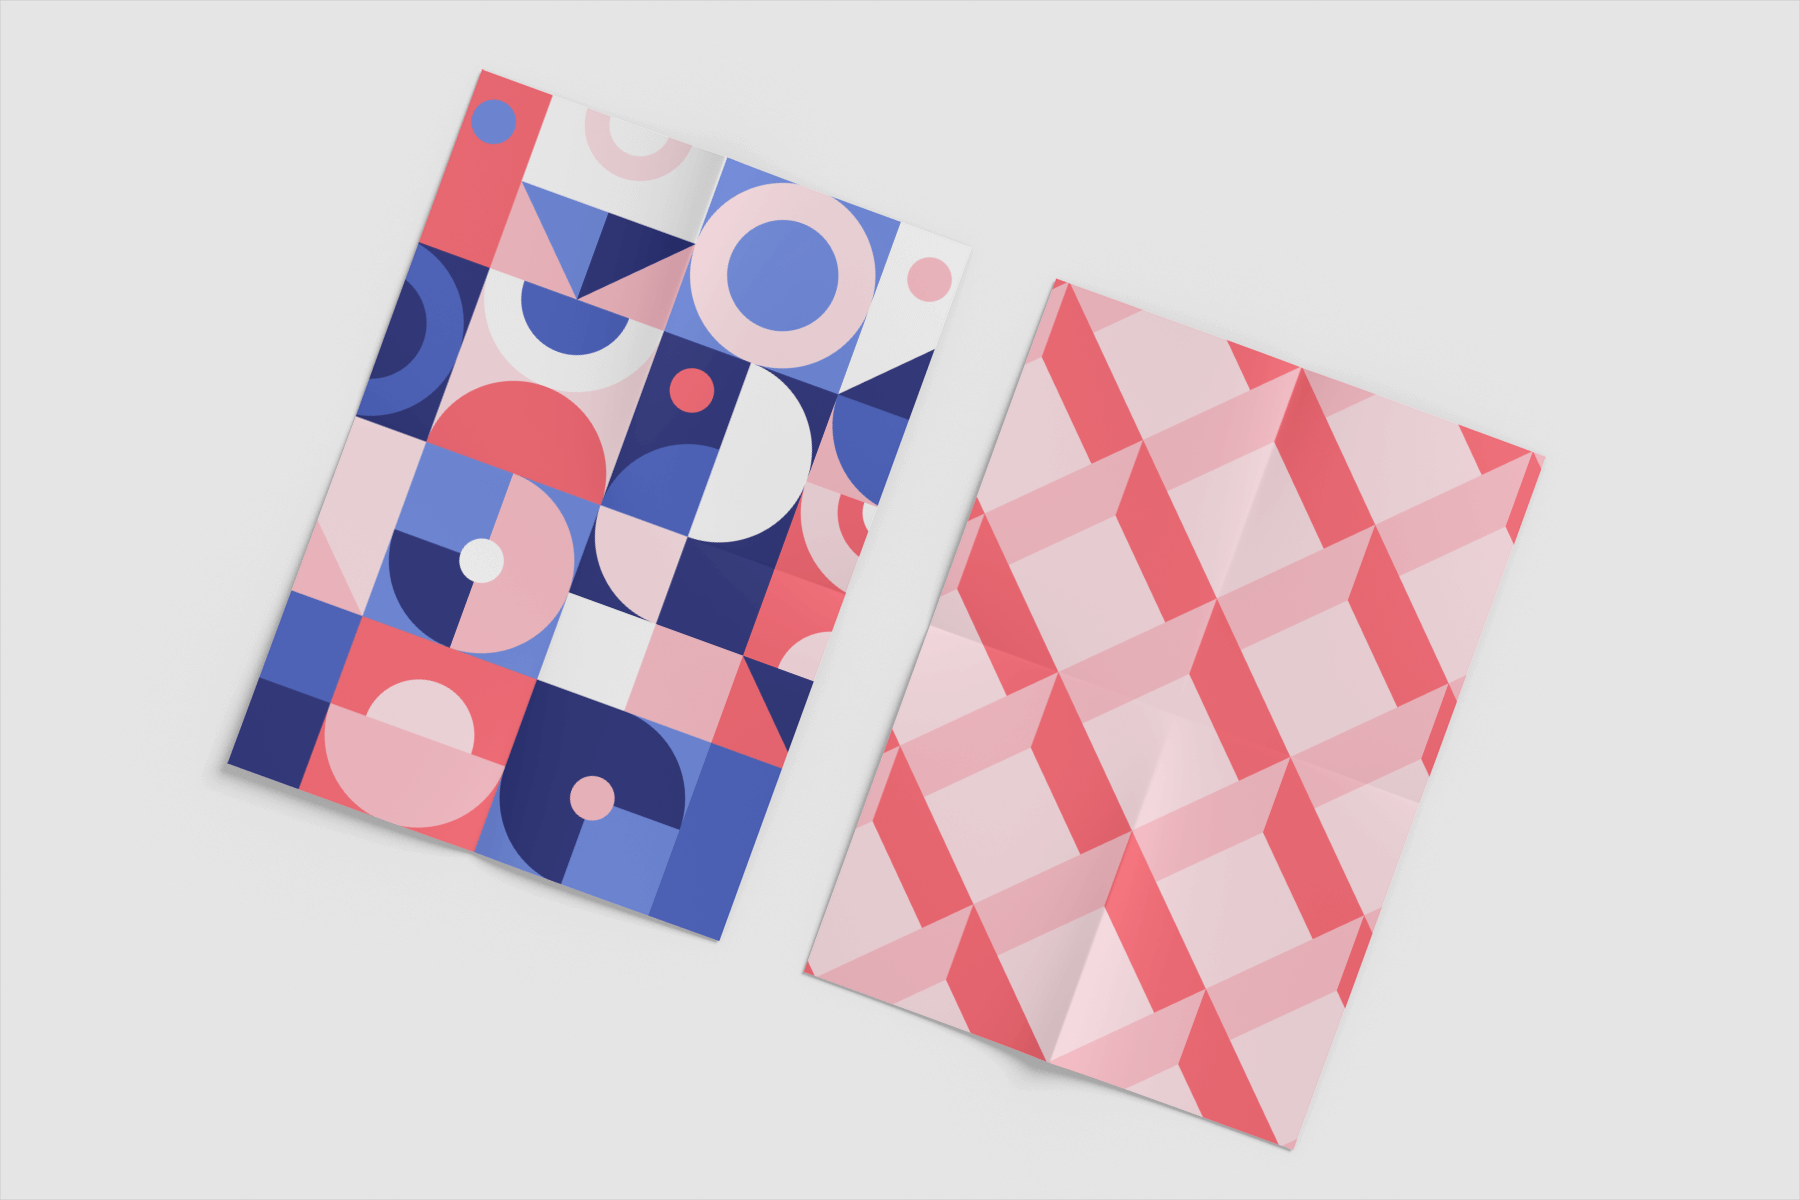 Free A4 Poster with Folds Mockup